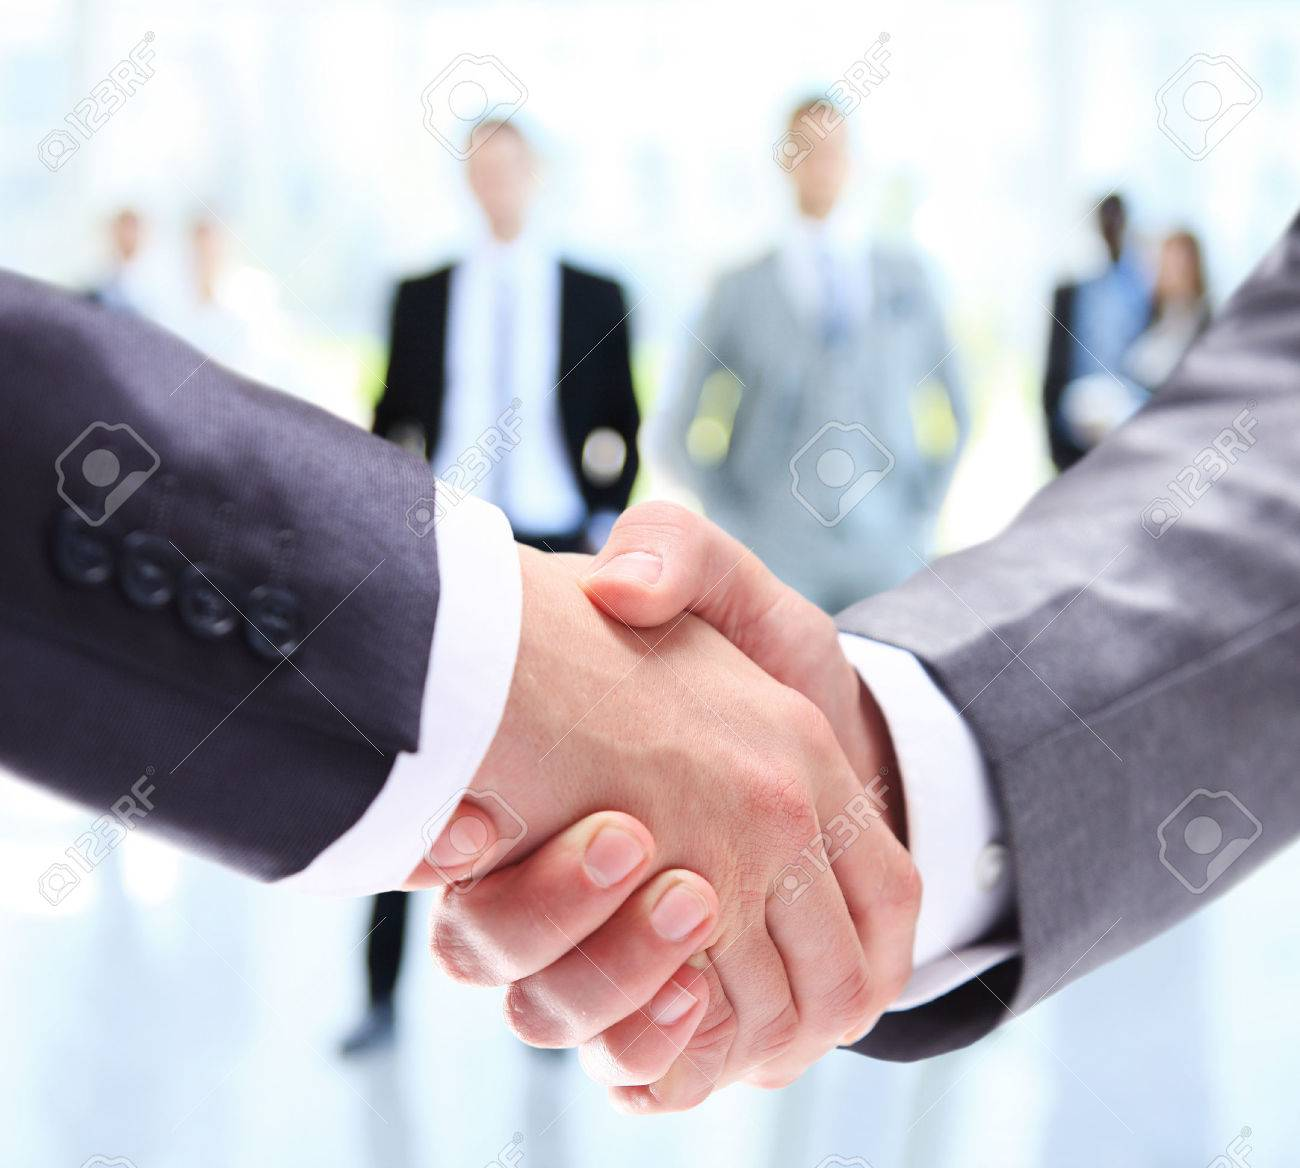 Business people handshake greeting deal at work photo free download - Closeup Of A Business Handshake Business People Shaking Hands Finishing Up A Meeting Stock